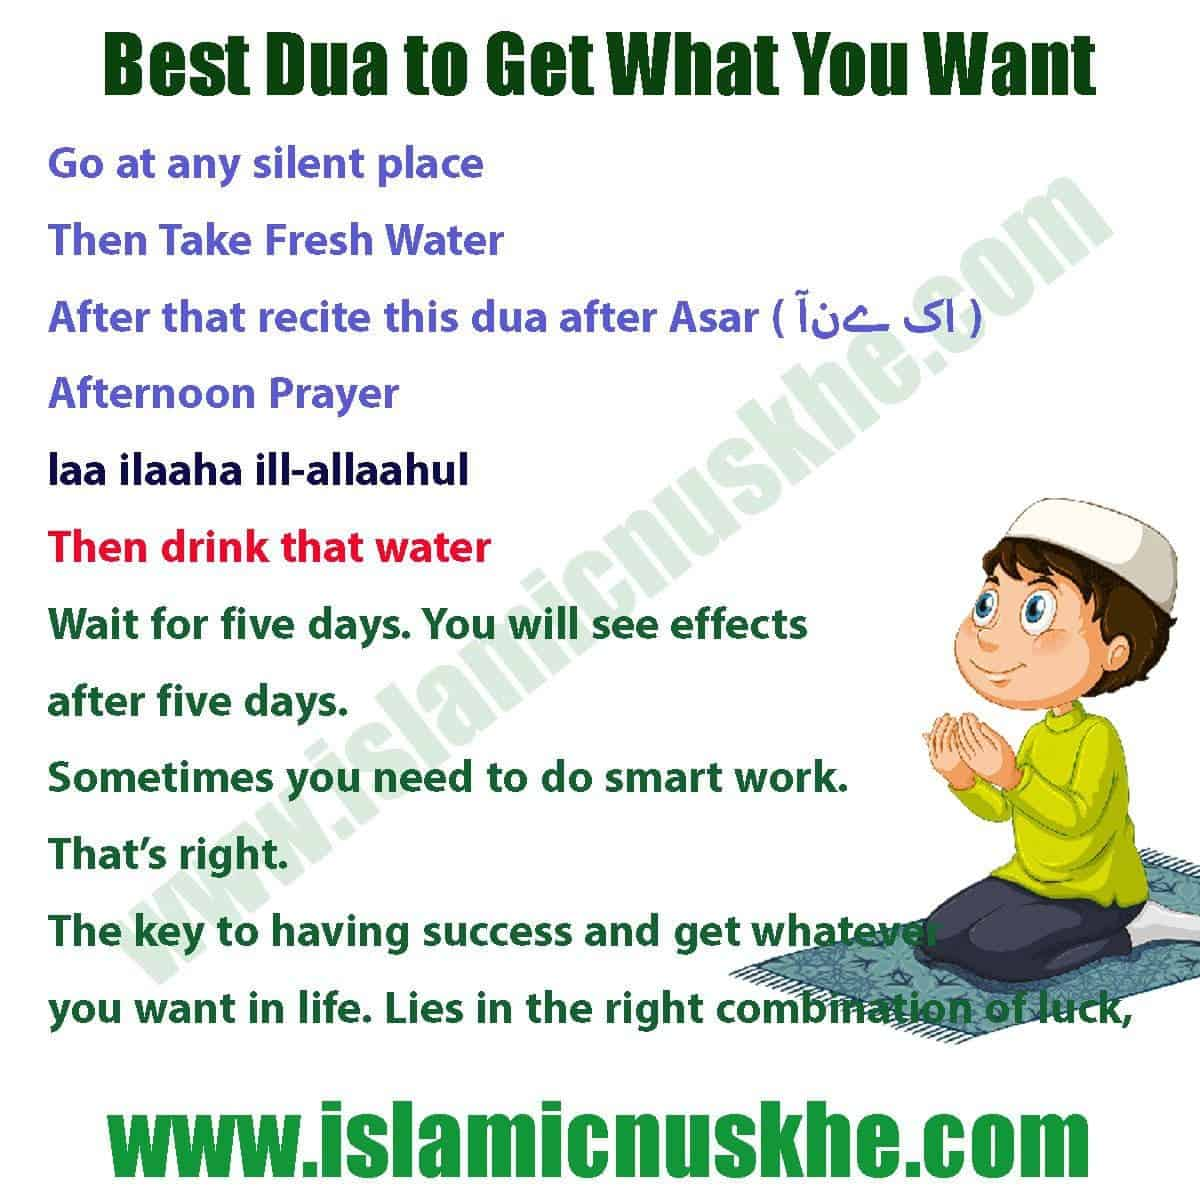 Dua to get what you want